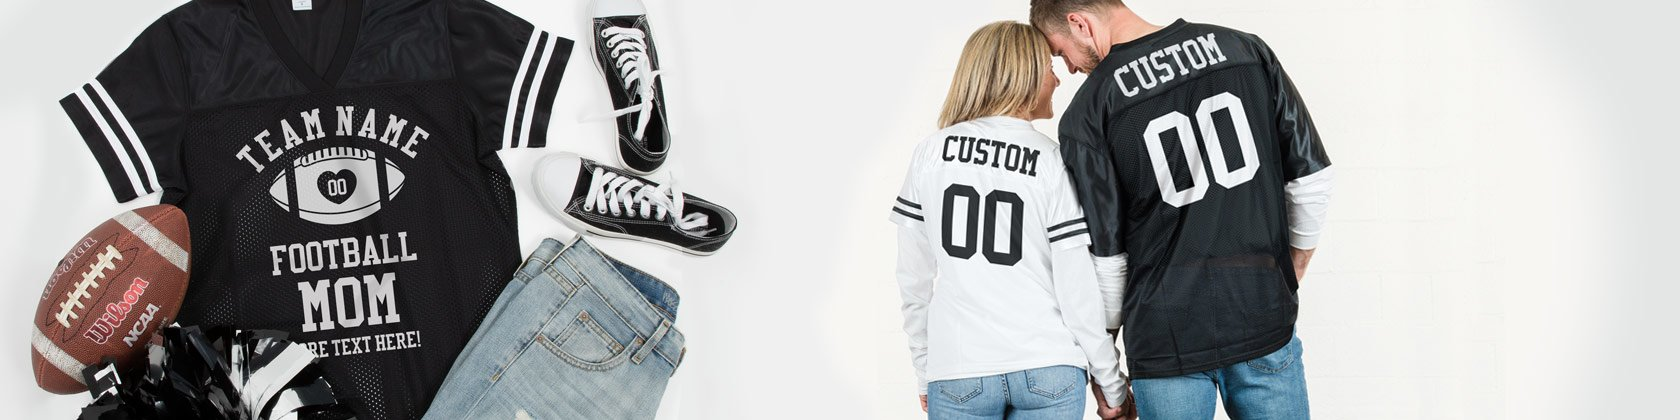 Custom Football Jerseys for Moms and Dads